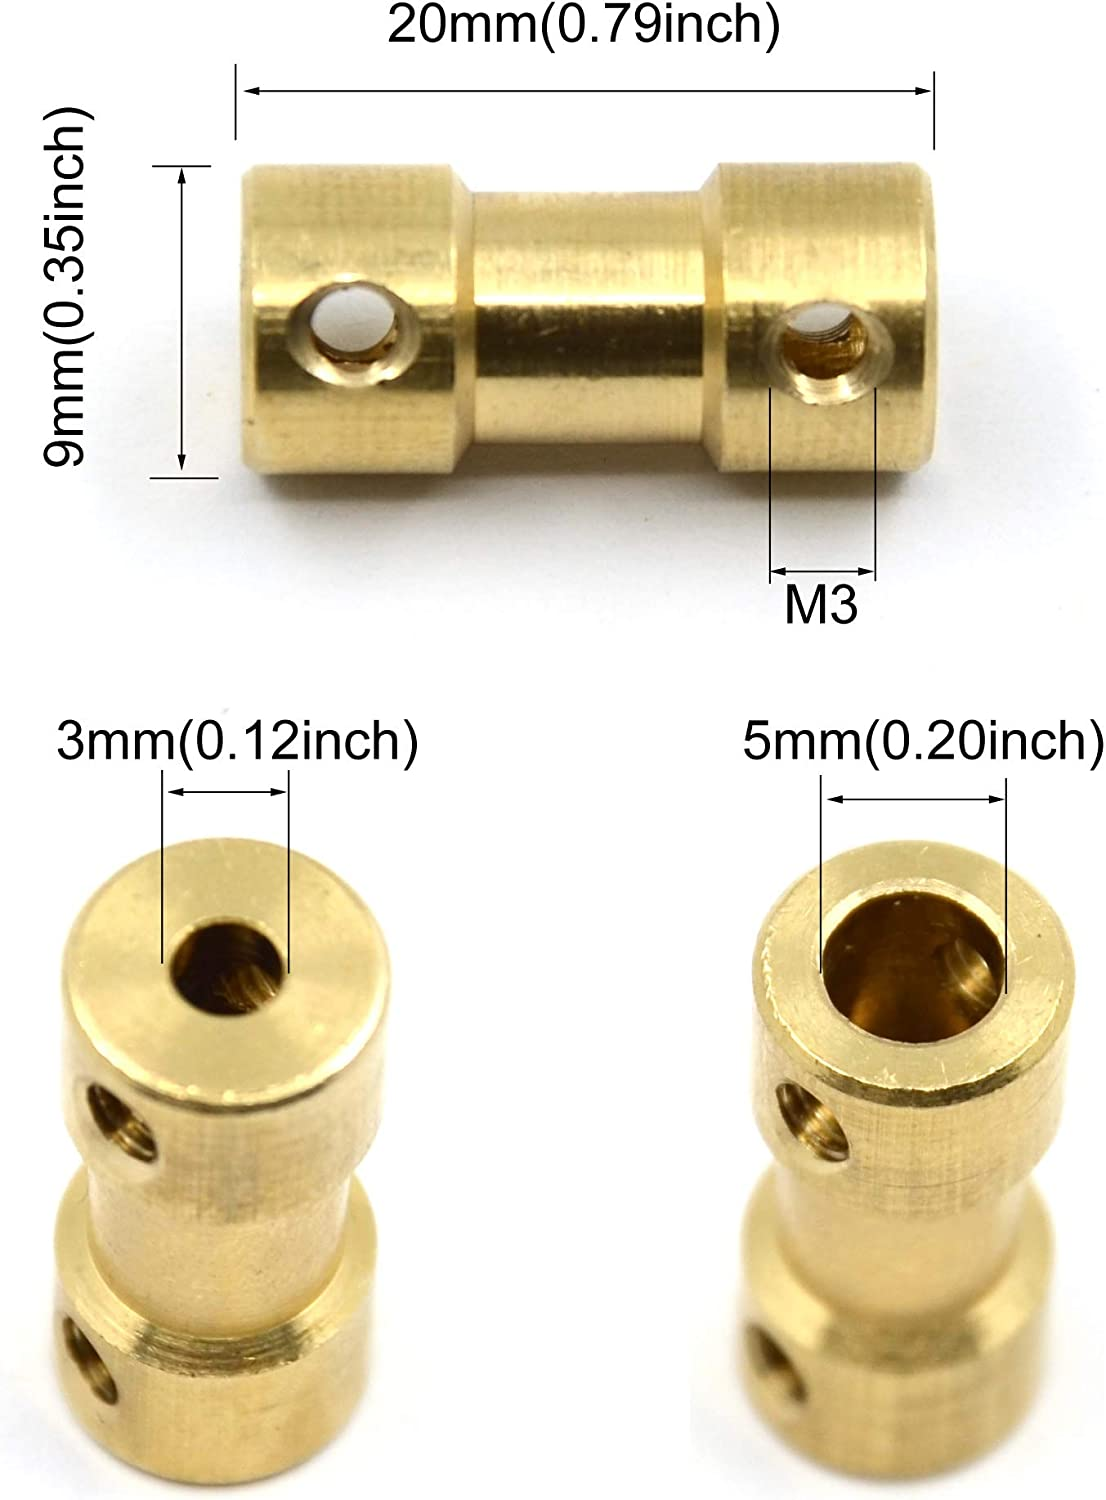 3mm to 5mm Befenybay 8 Pcs 3mm to 5mm Brass Connector Copper DIY Motor Flexible Shaft Coupling Joint Connector With Screws for RC Model Motor